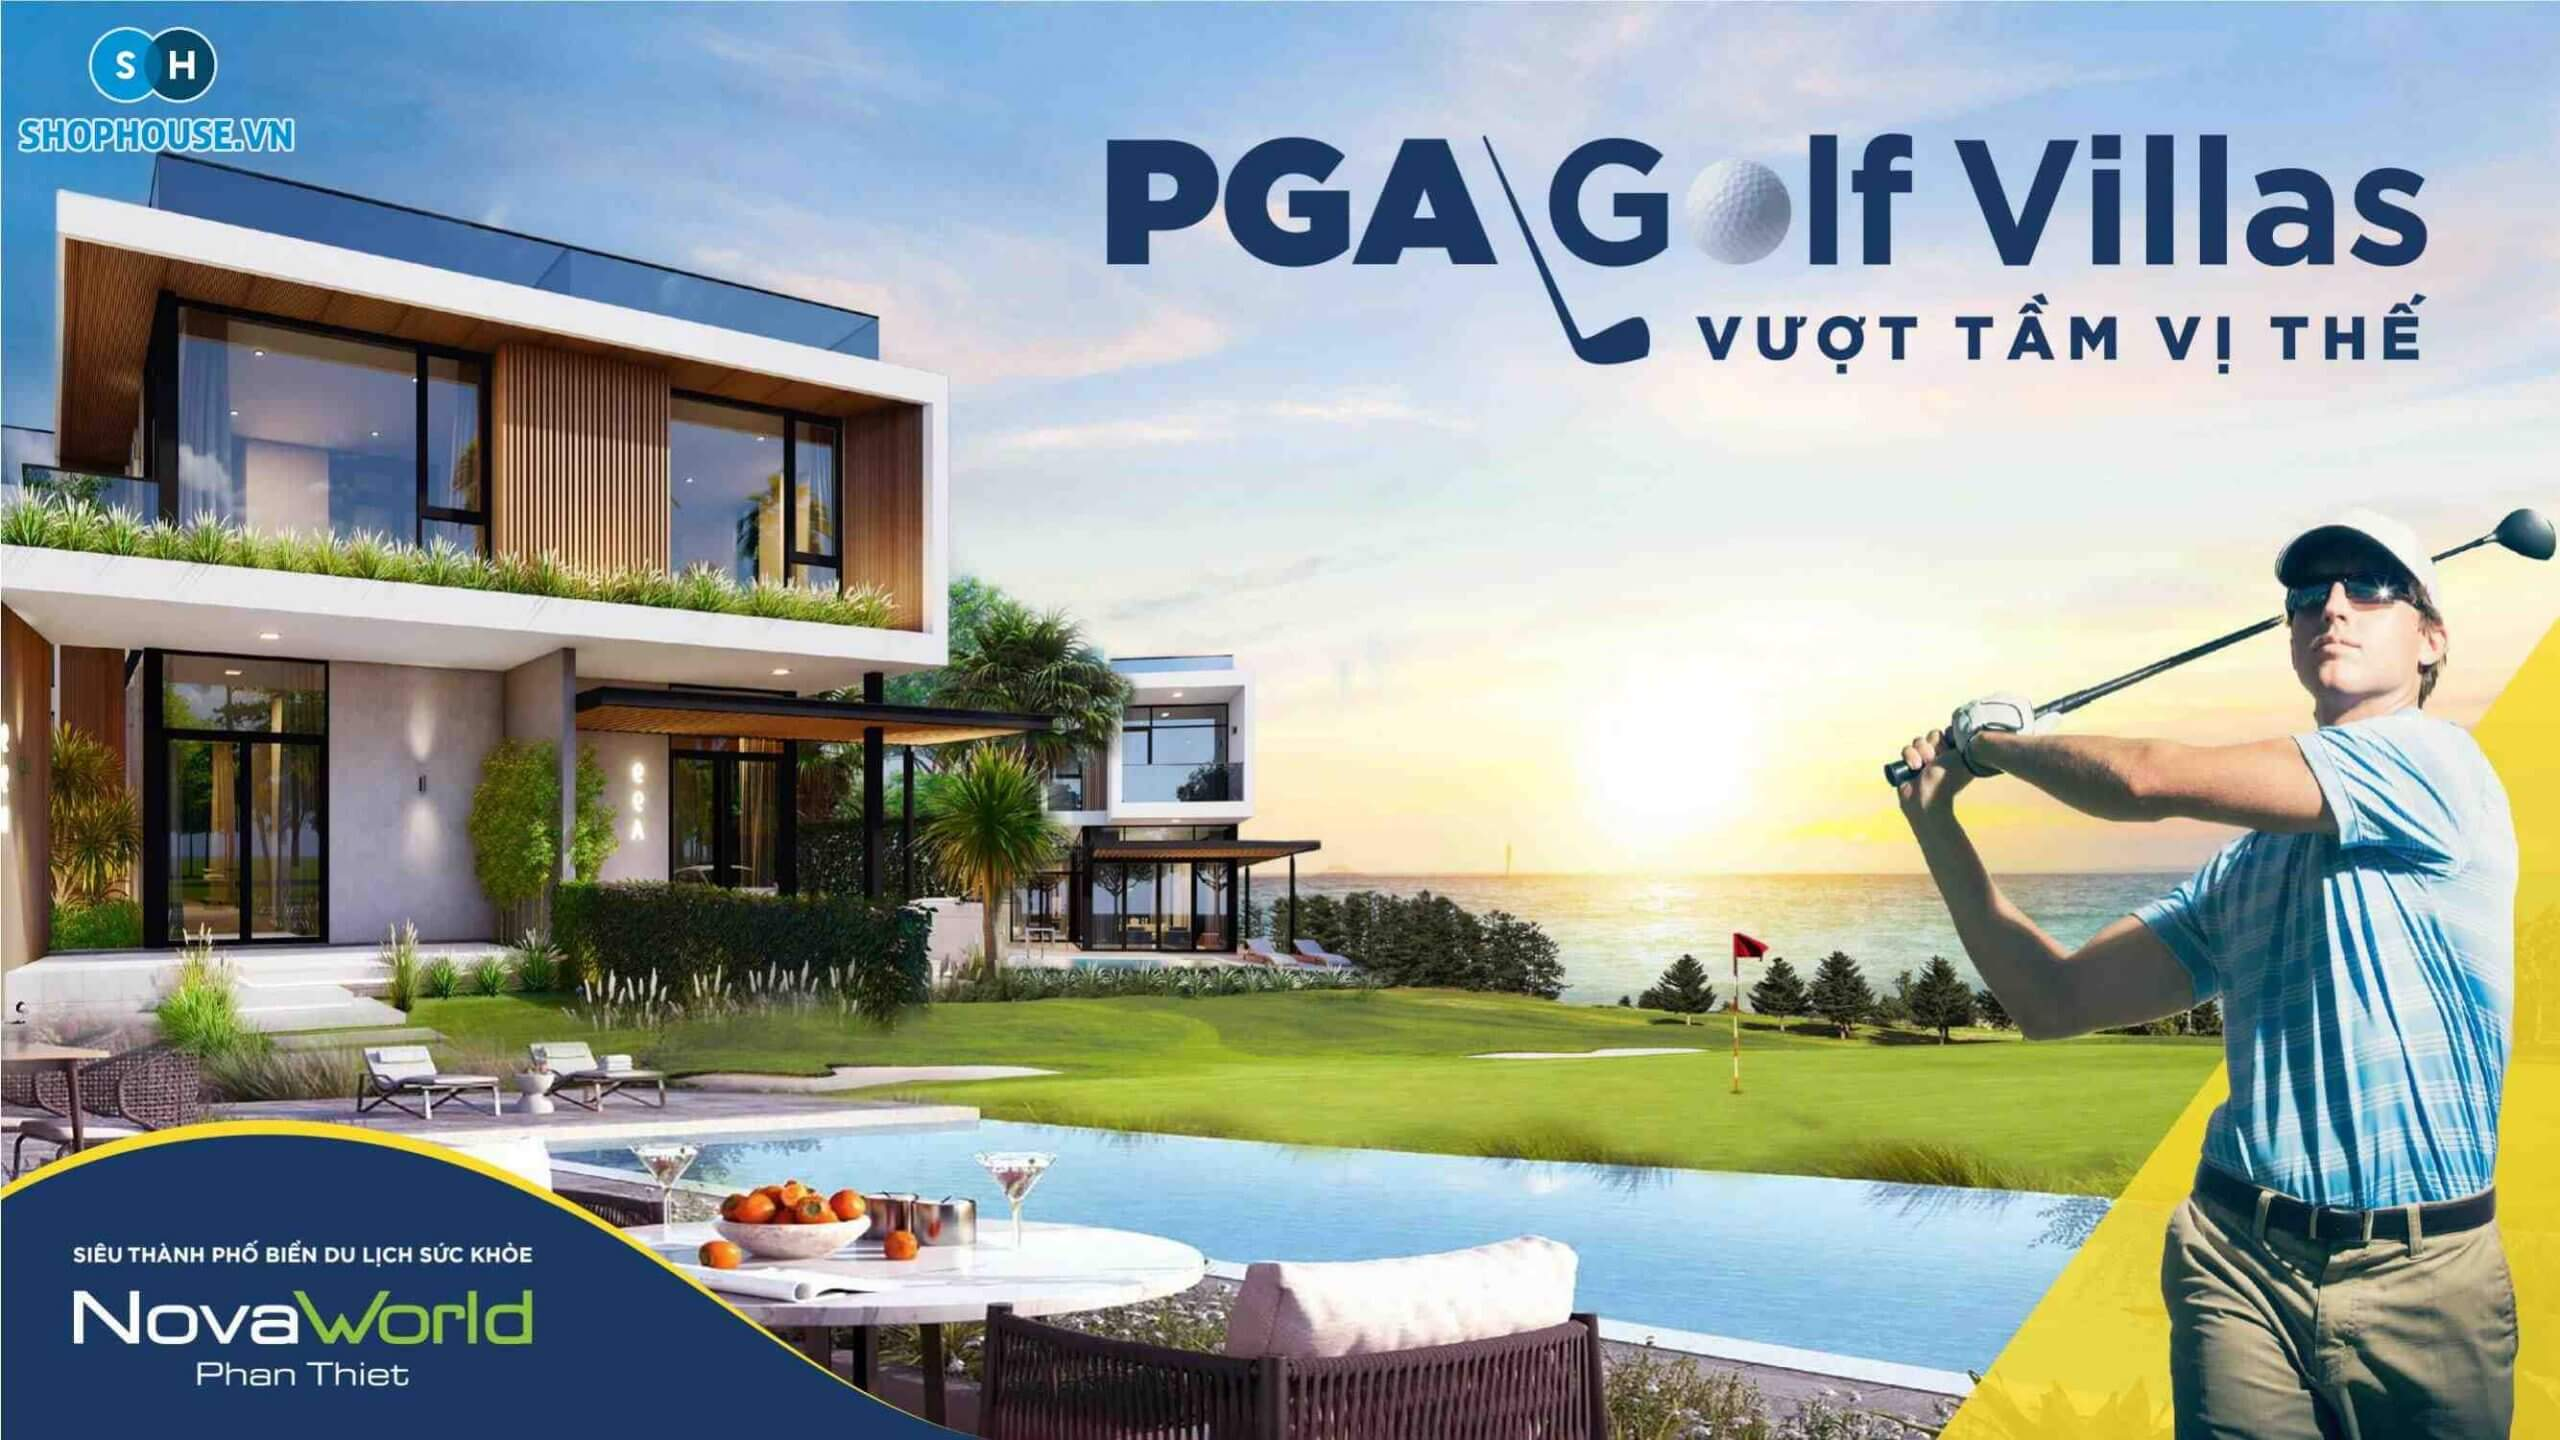 biet thu Novaworld Phan Thiet PGA Golf Villa scaled